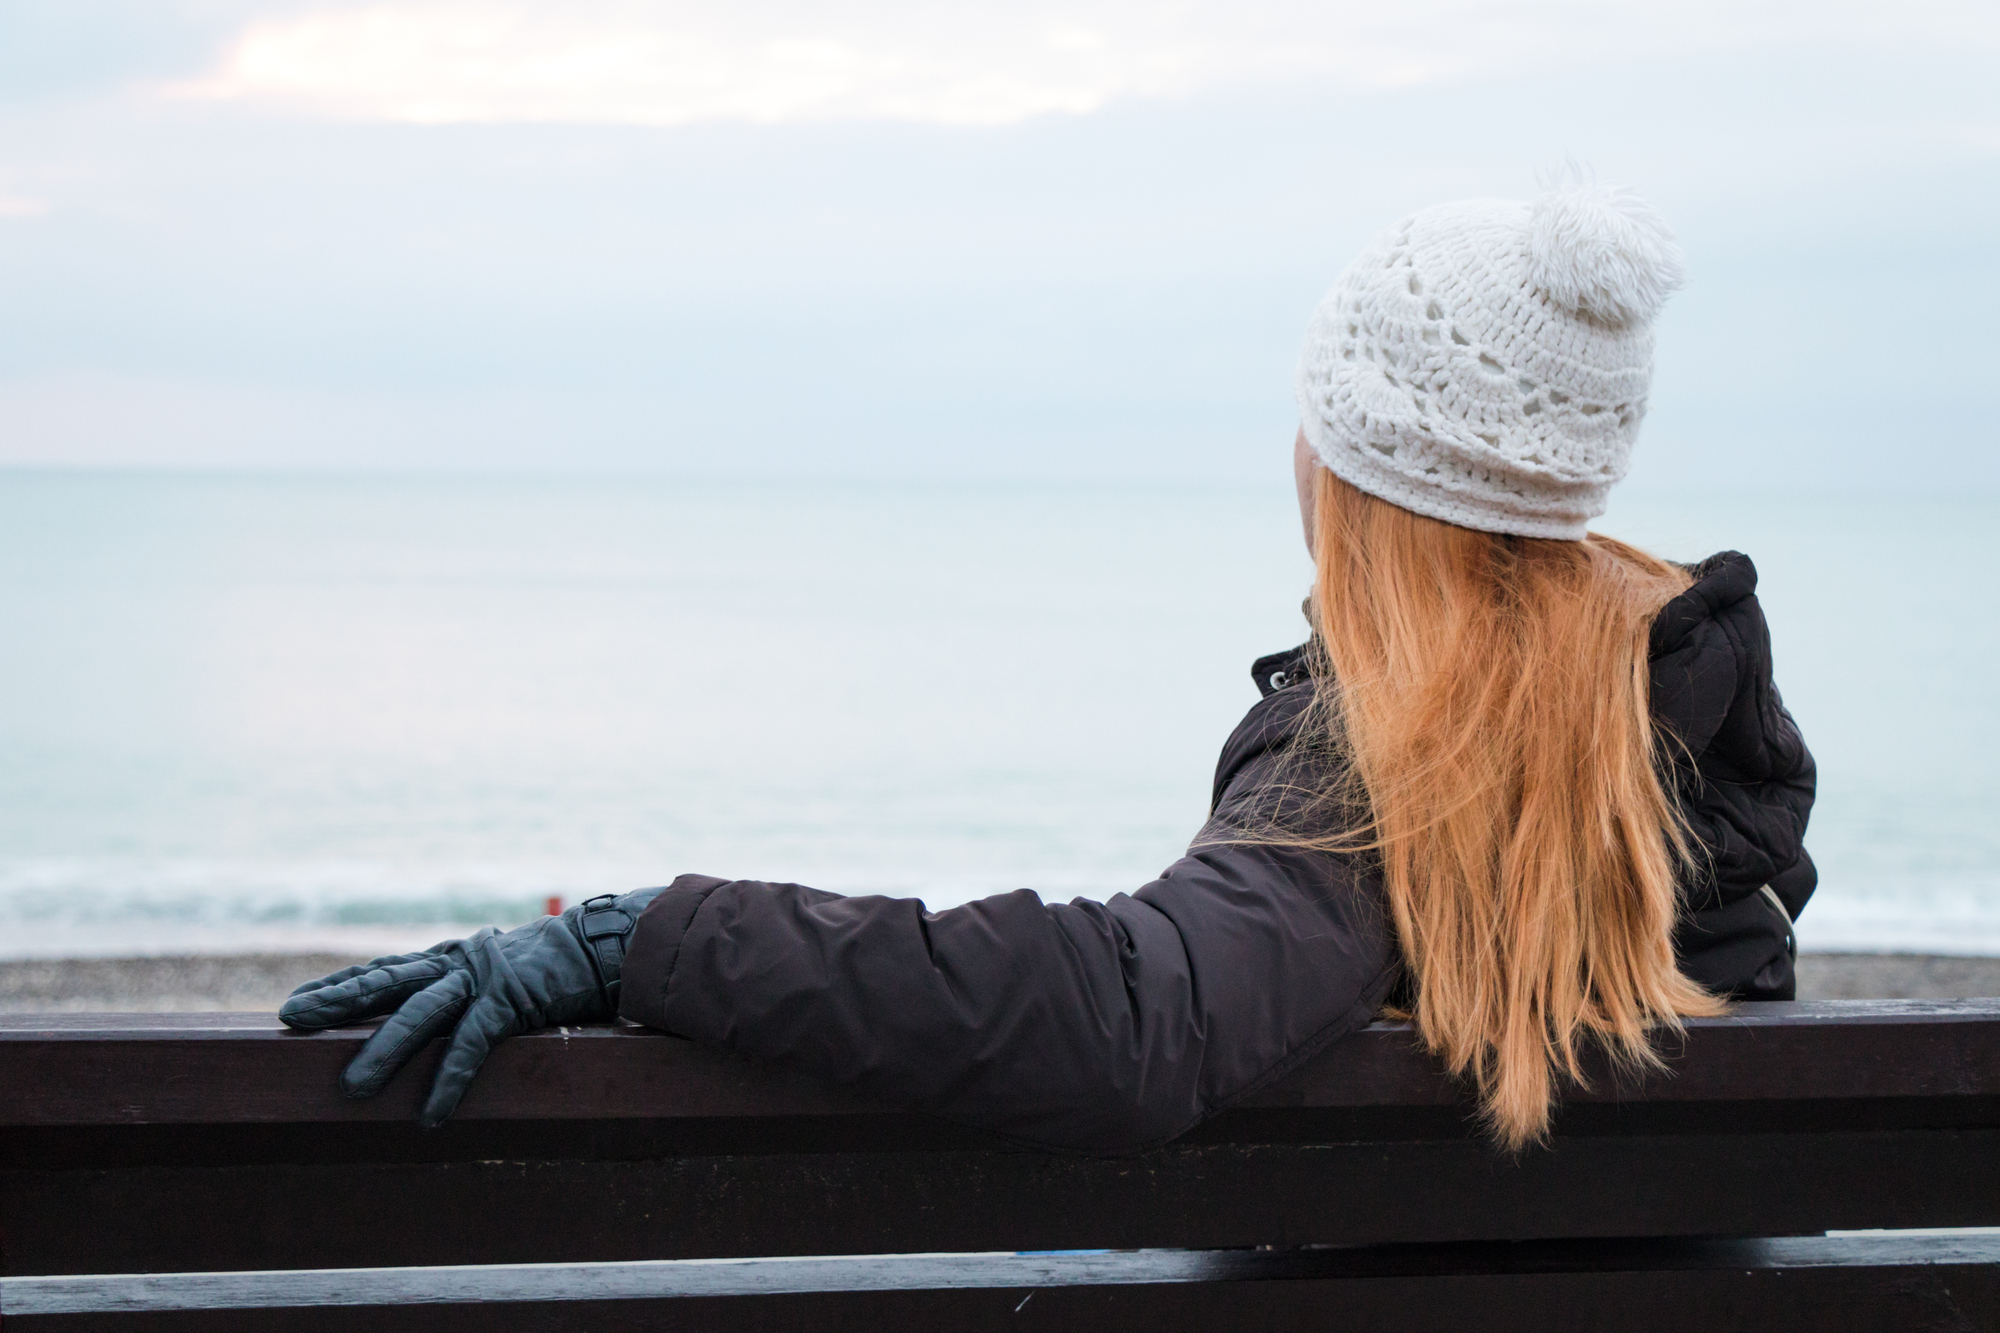 How Judging Can Increase Your Anxiety